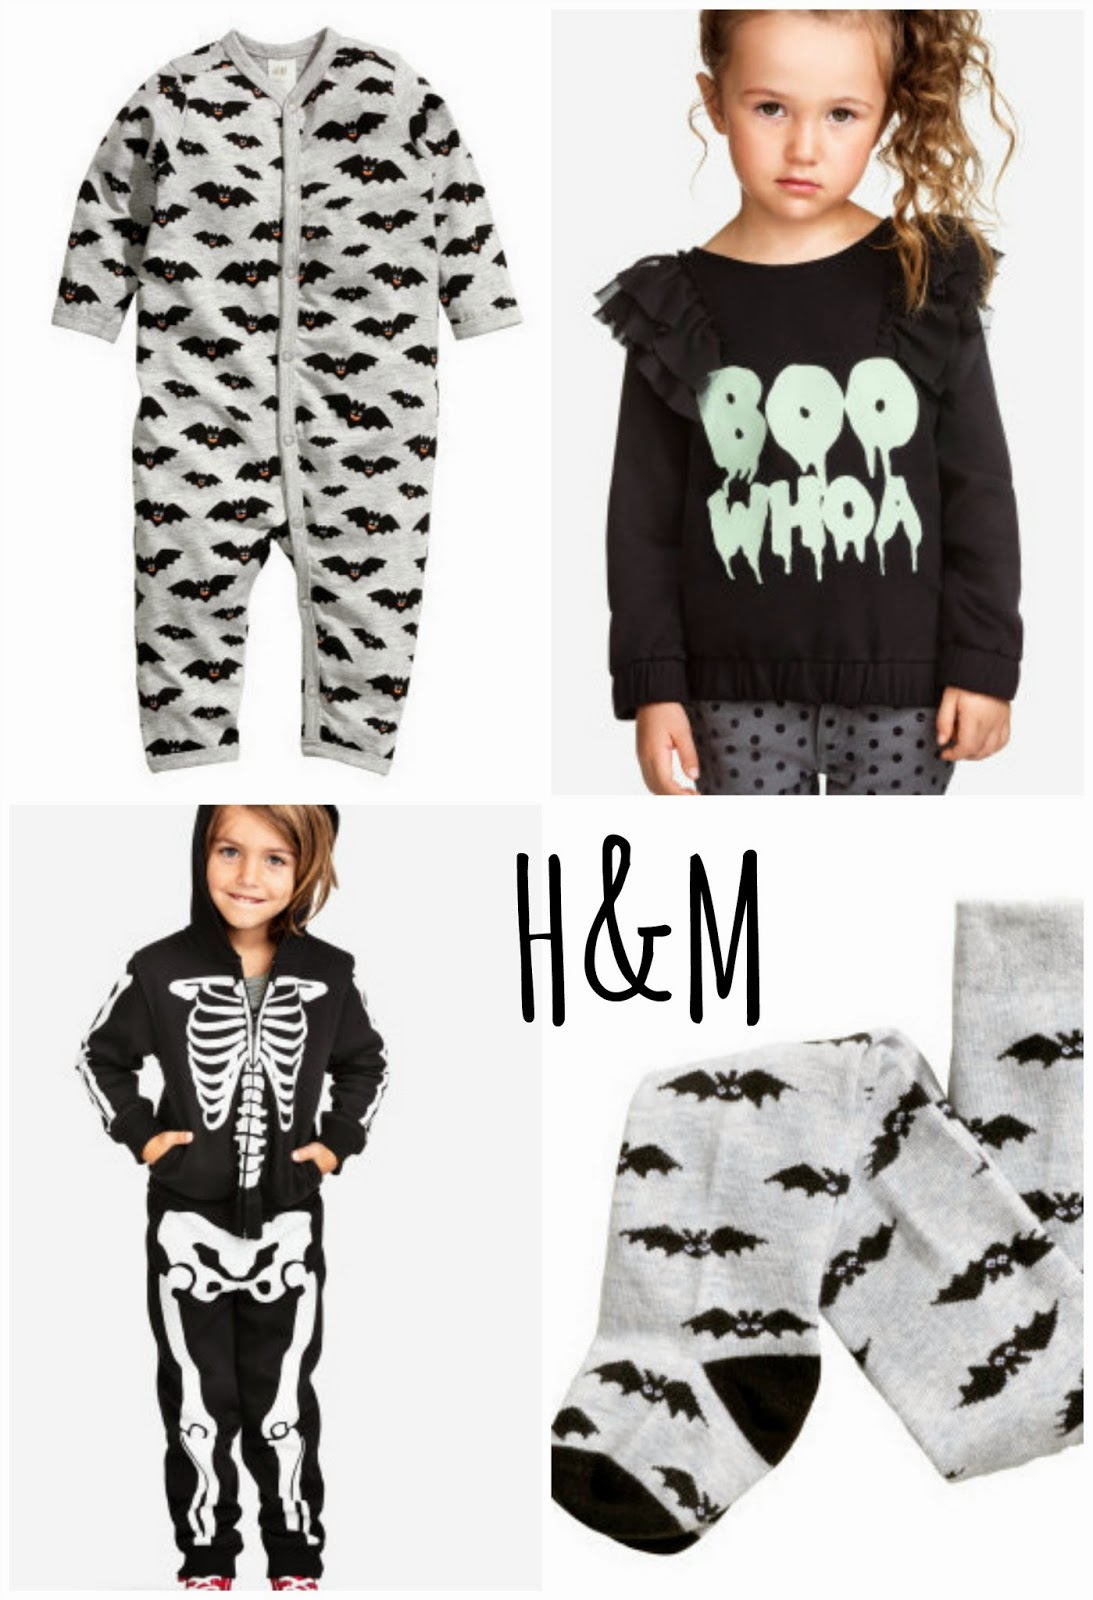 H&M Halloween Fashion